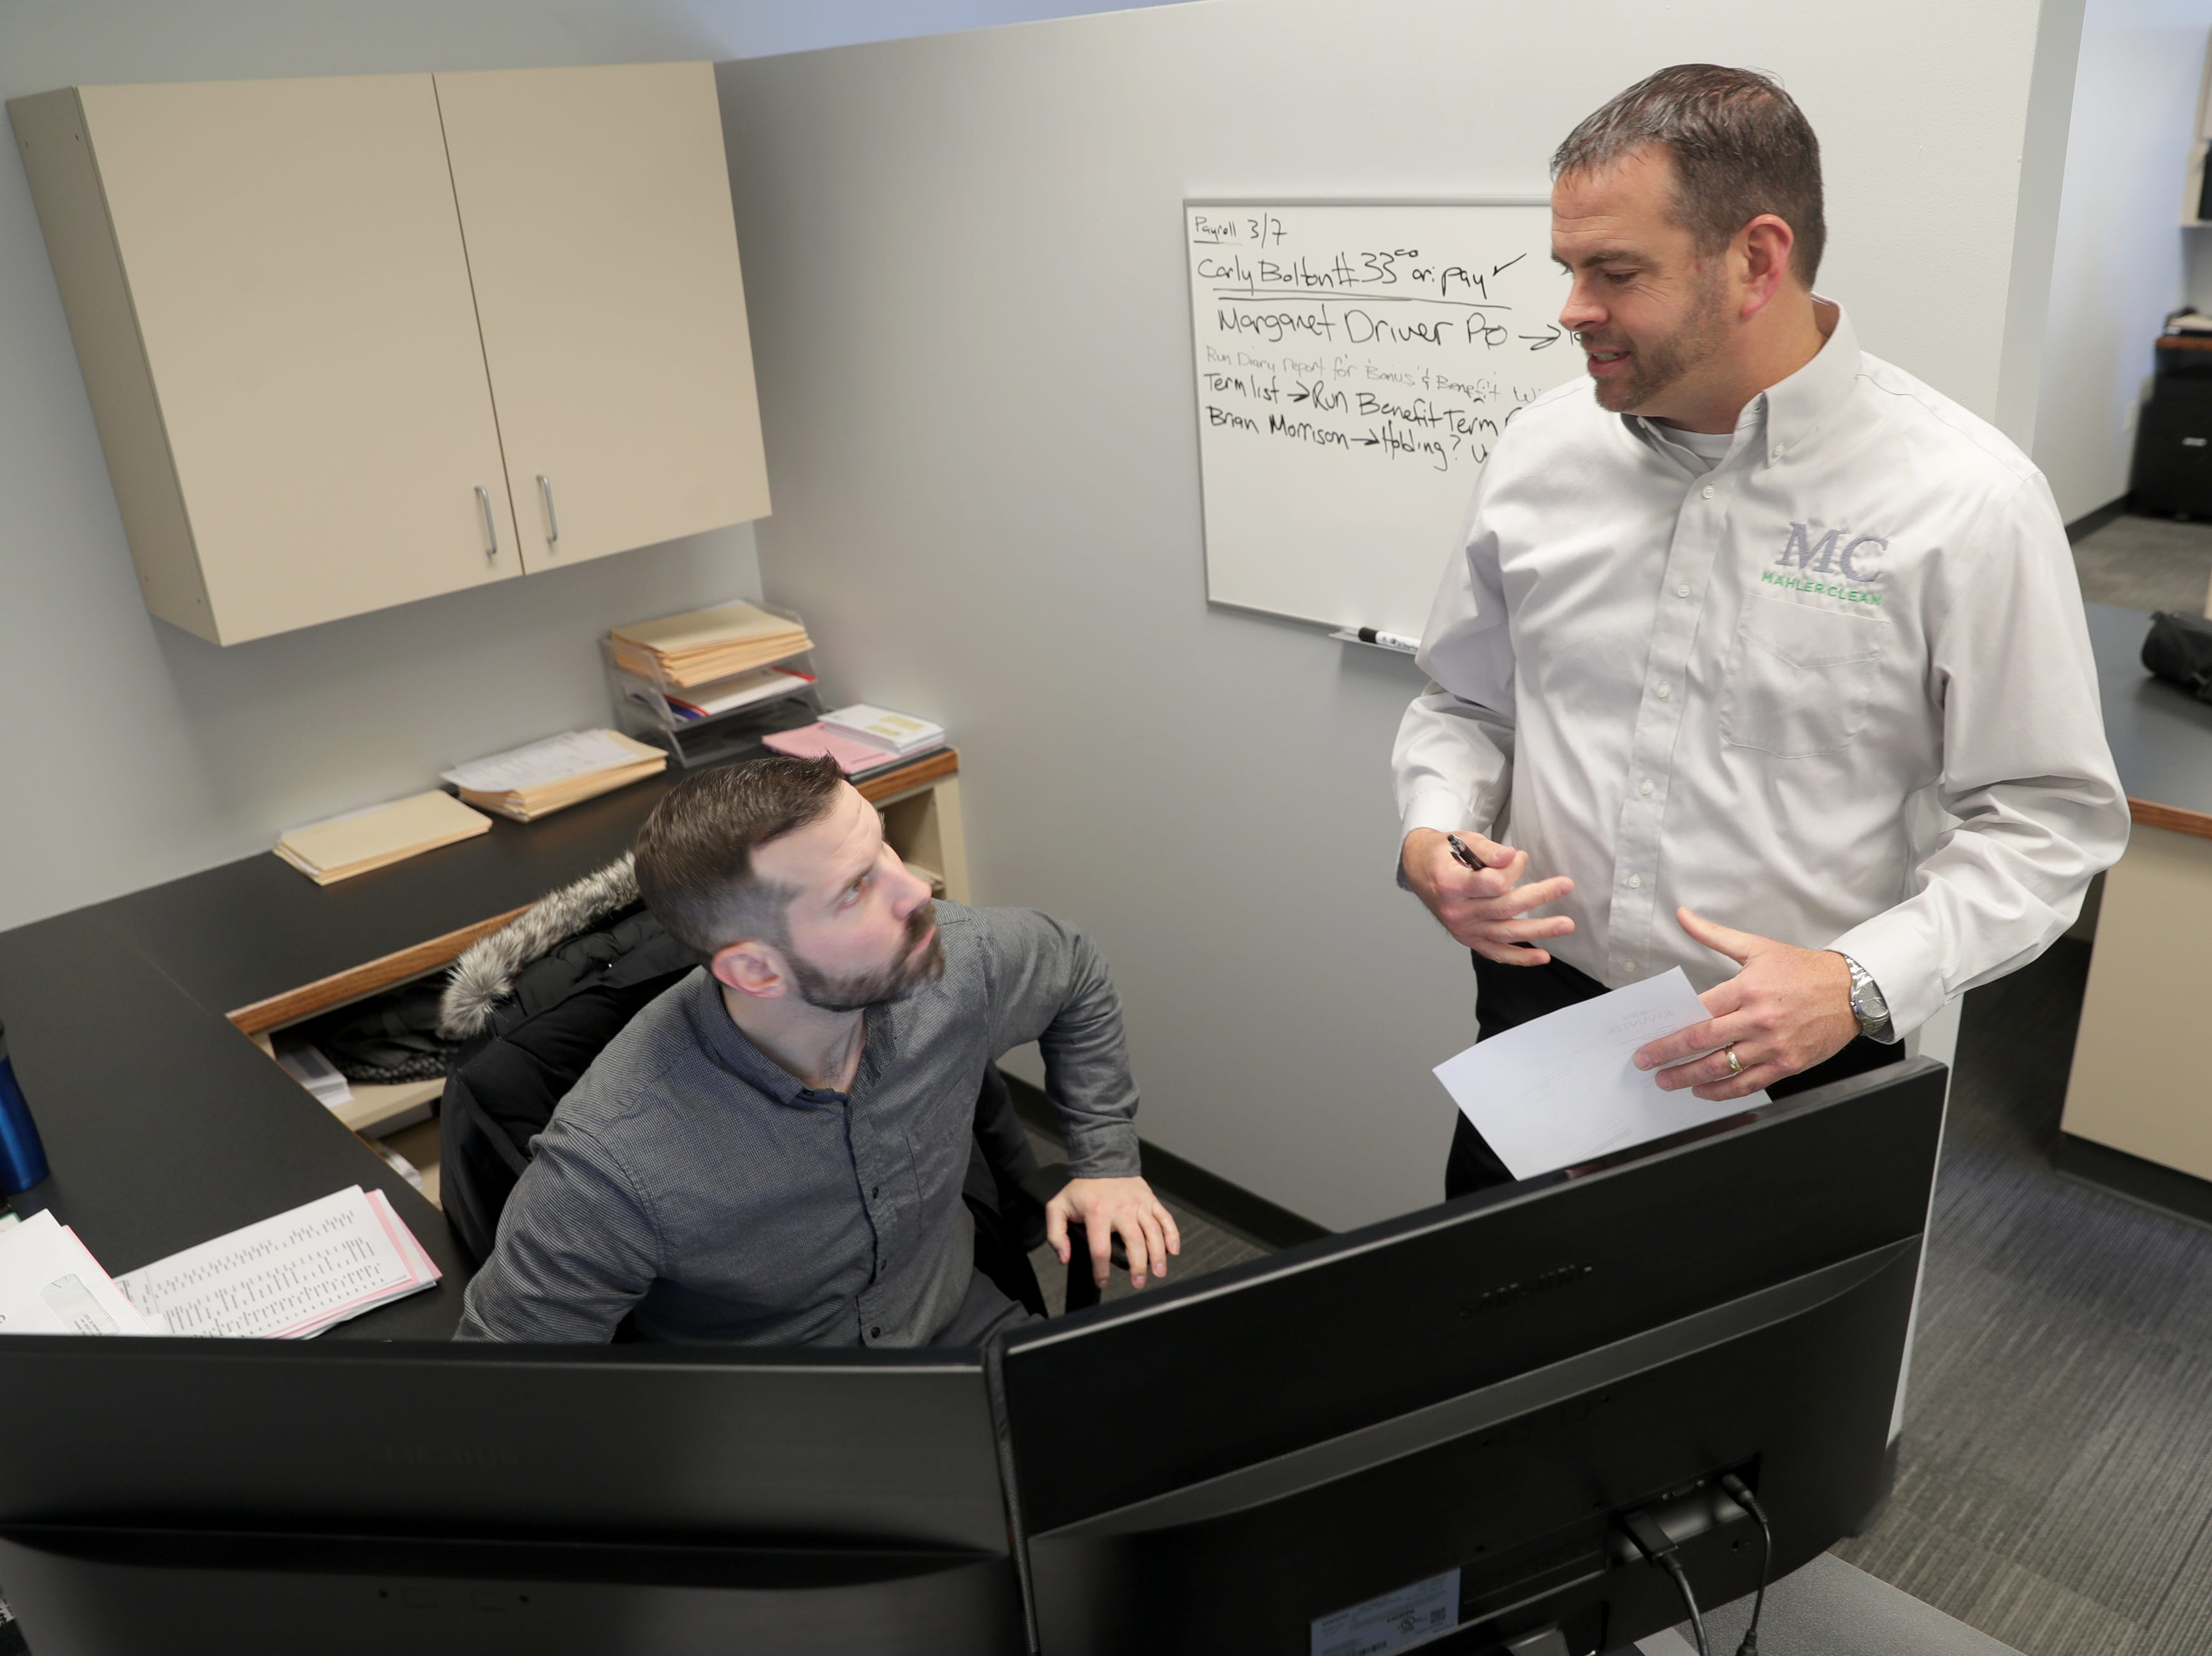 Michael Hoard (left), a MahlerClean human resource generalist, speaks with company President PatSullivan on March 6 at MahlerClean in Brookfield.